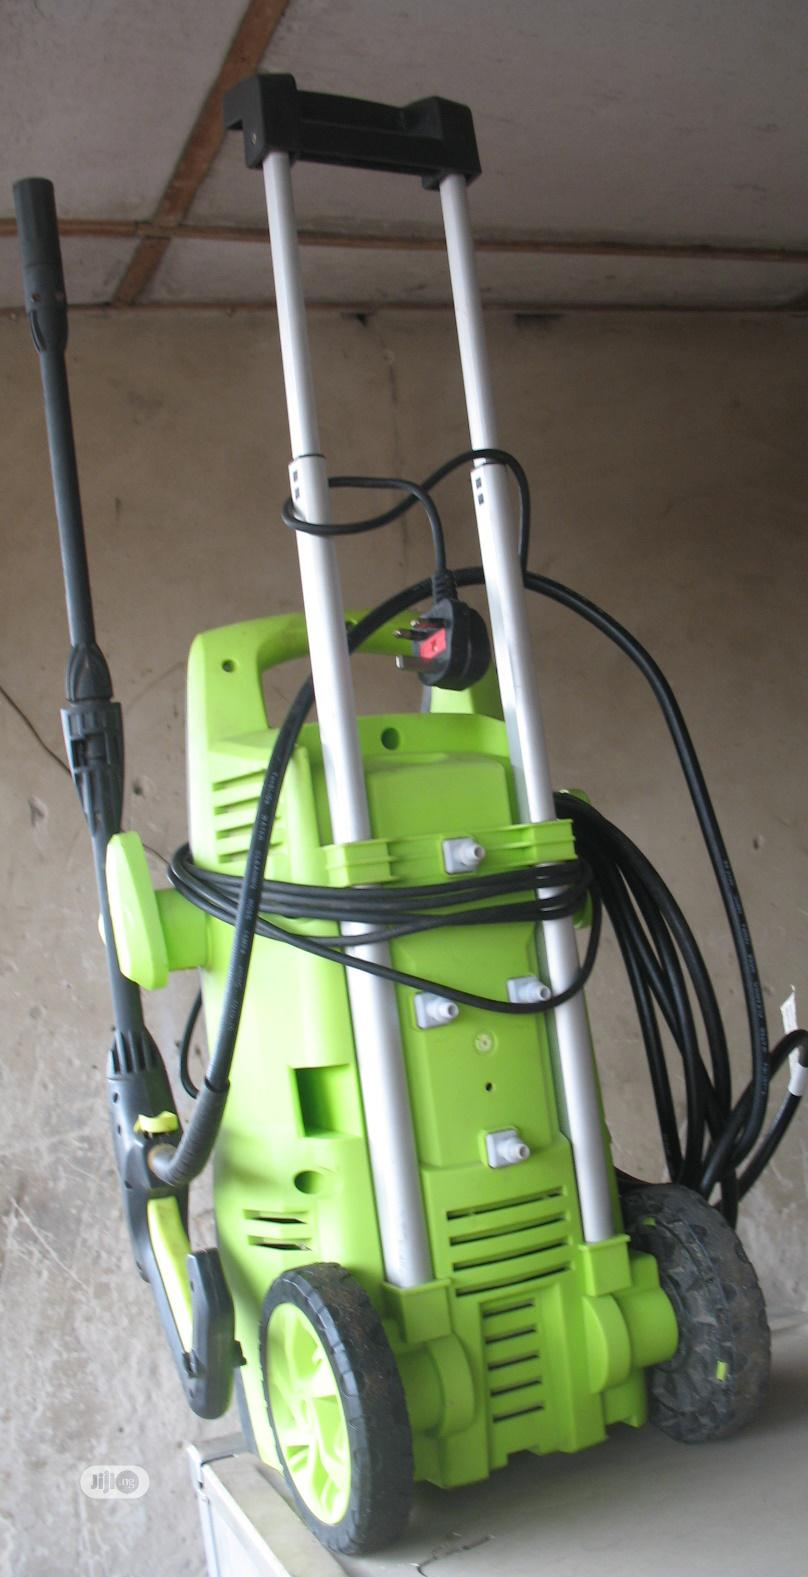 RAC 140 High Pressure Washer (Efficient And Thorough)